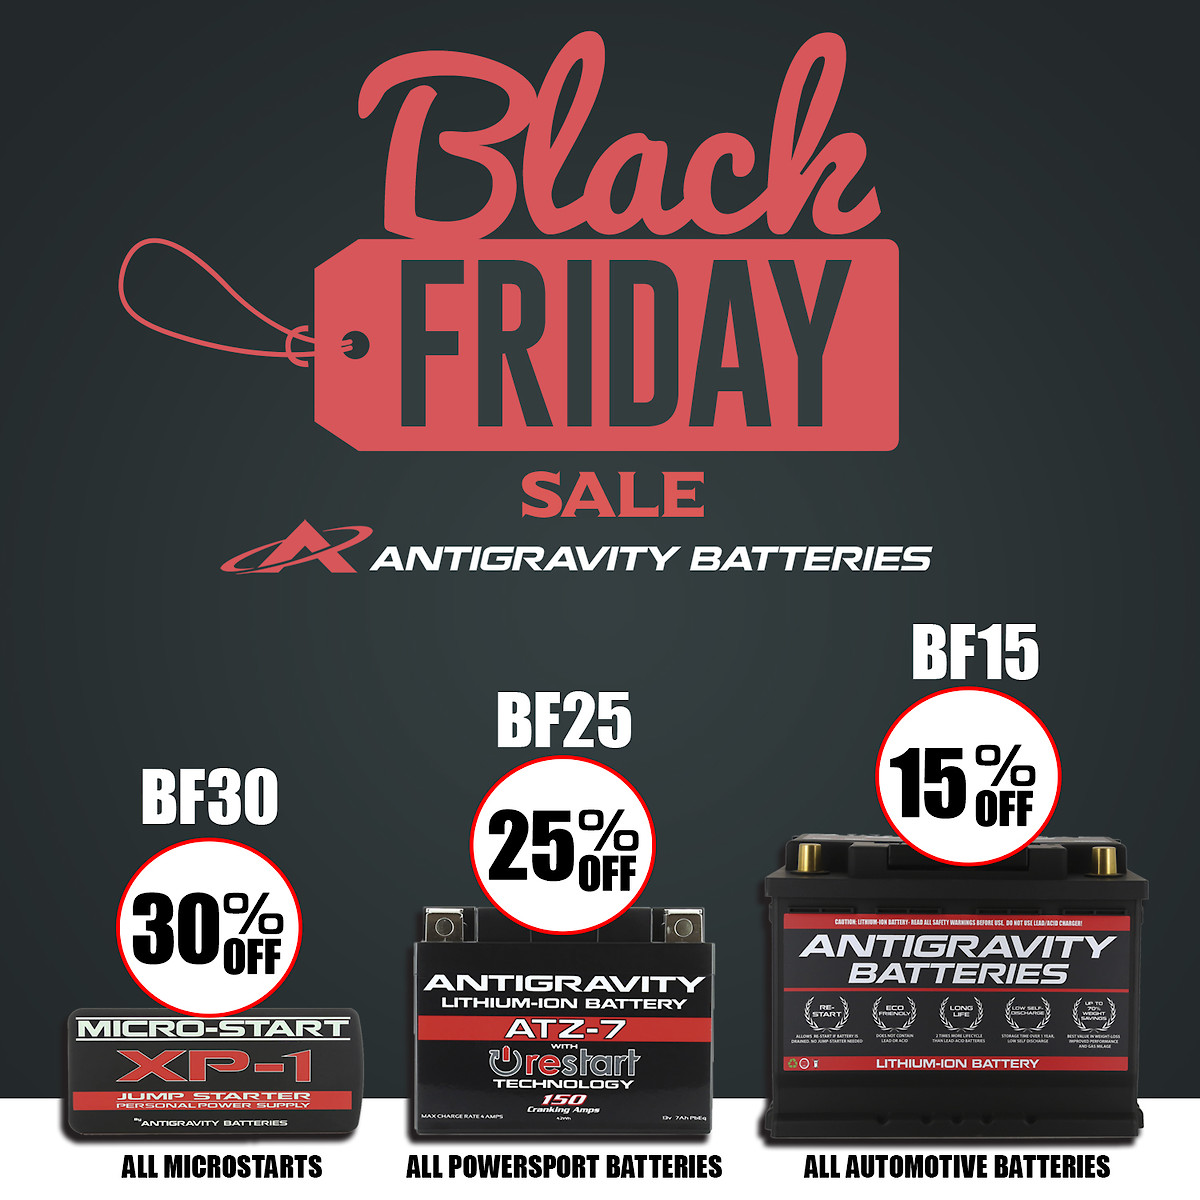 Biggest Black Friday Sale Ever By Antigravity Batteries For All Ya Moto Folks Moto Related Motocross Forums Message Boards Vital Mx